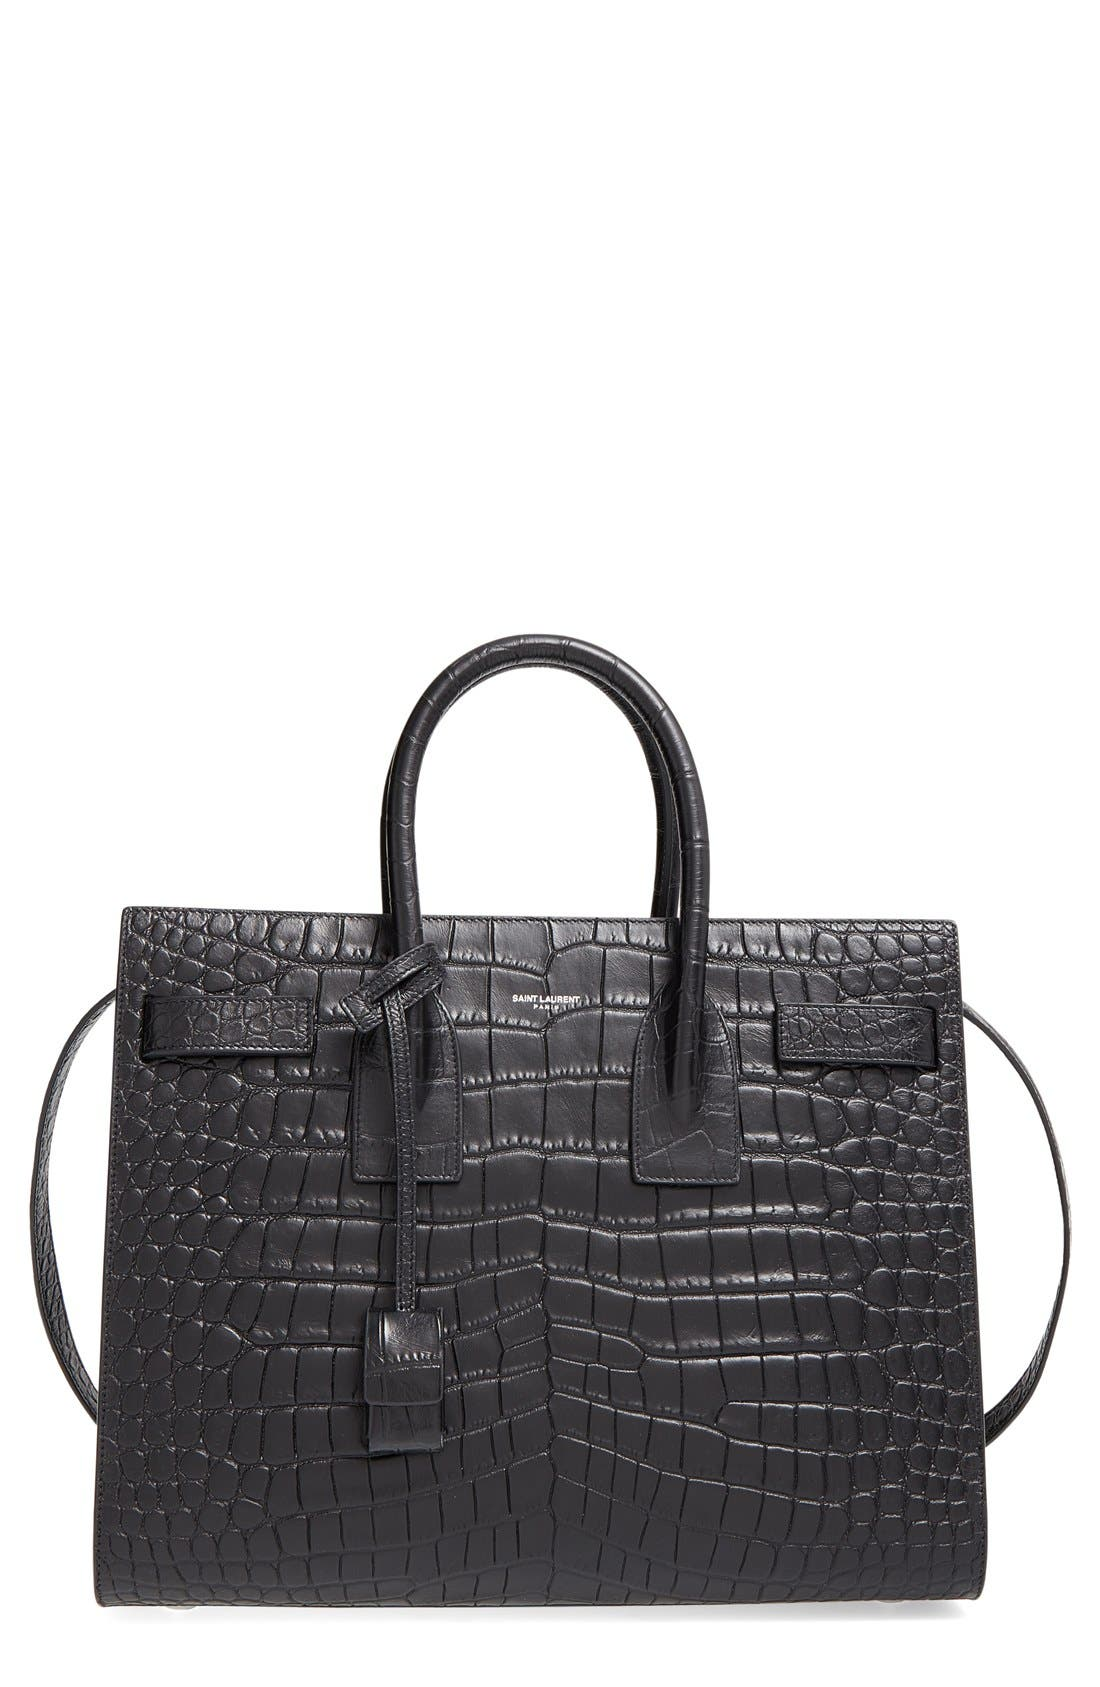 'Small Sac de Jour' Croc Embossed Leather Tote,                             Main thumbnail 1, color,                             NOIR